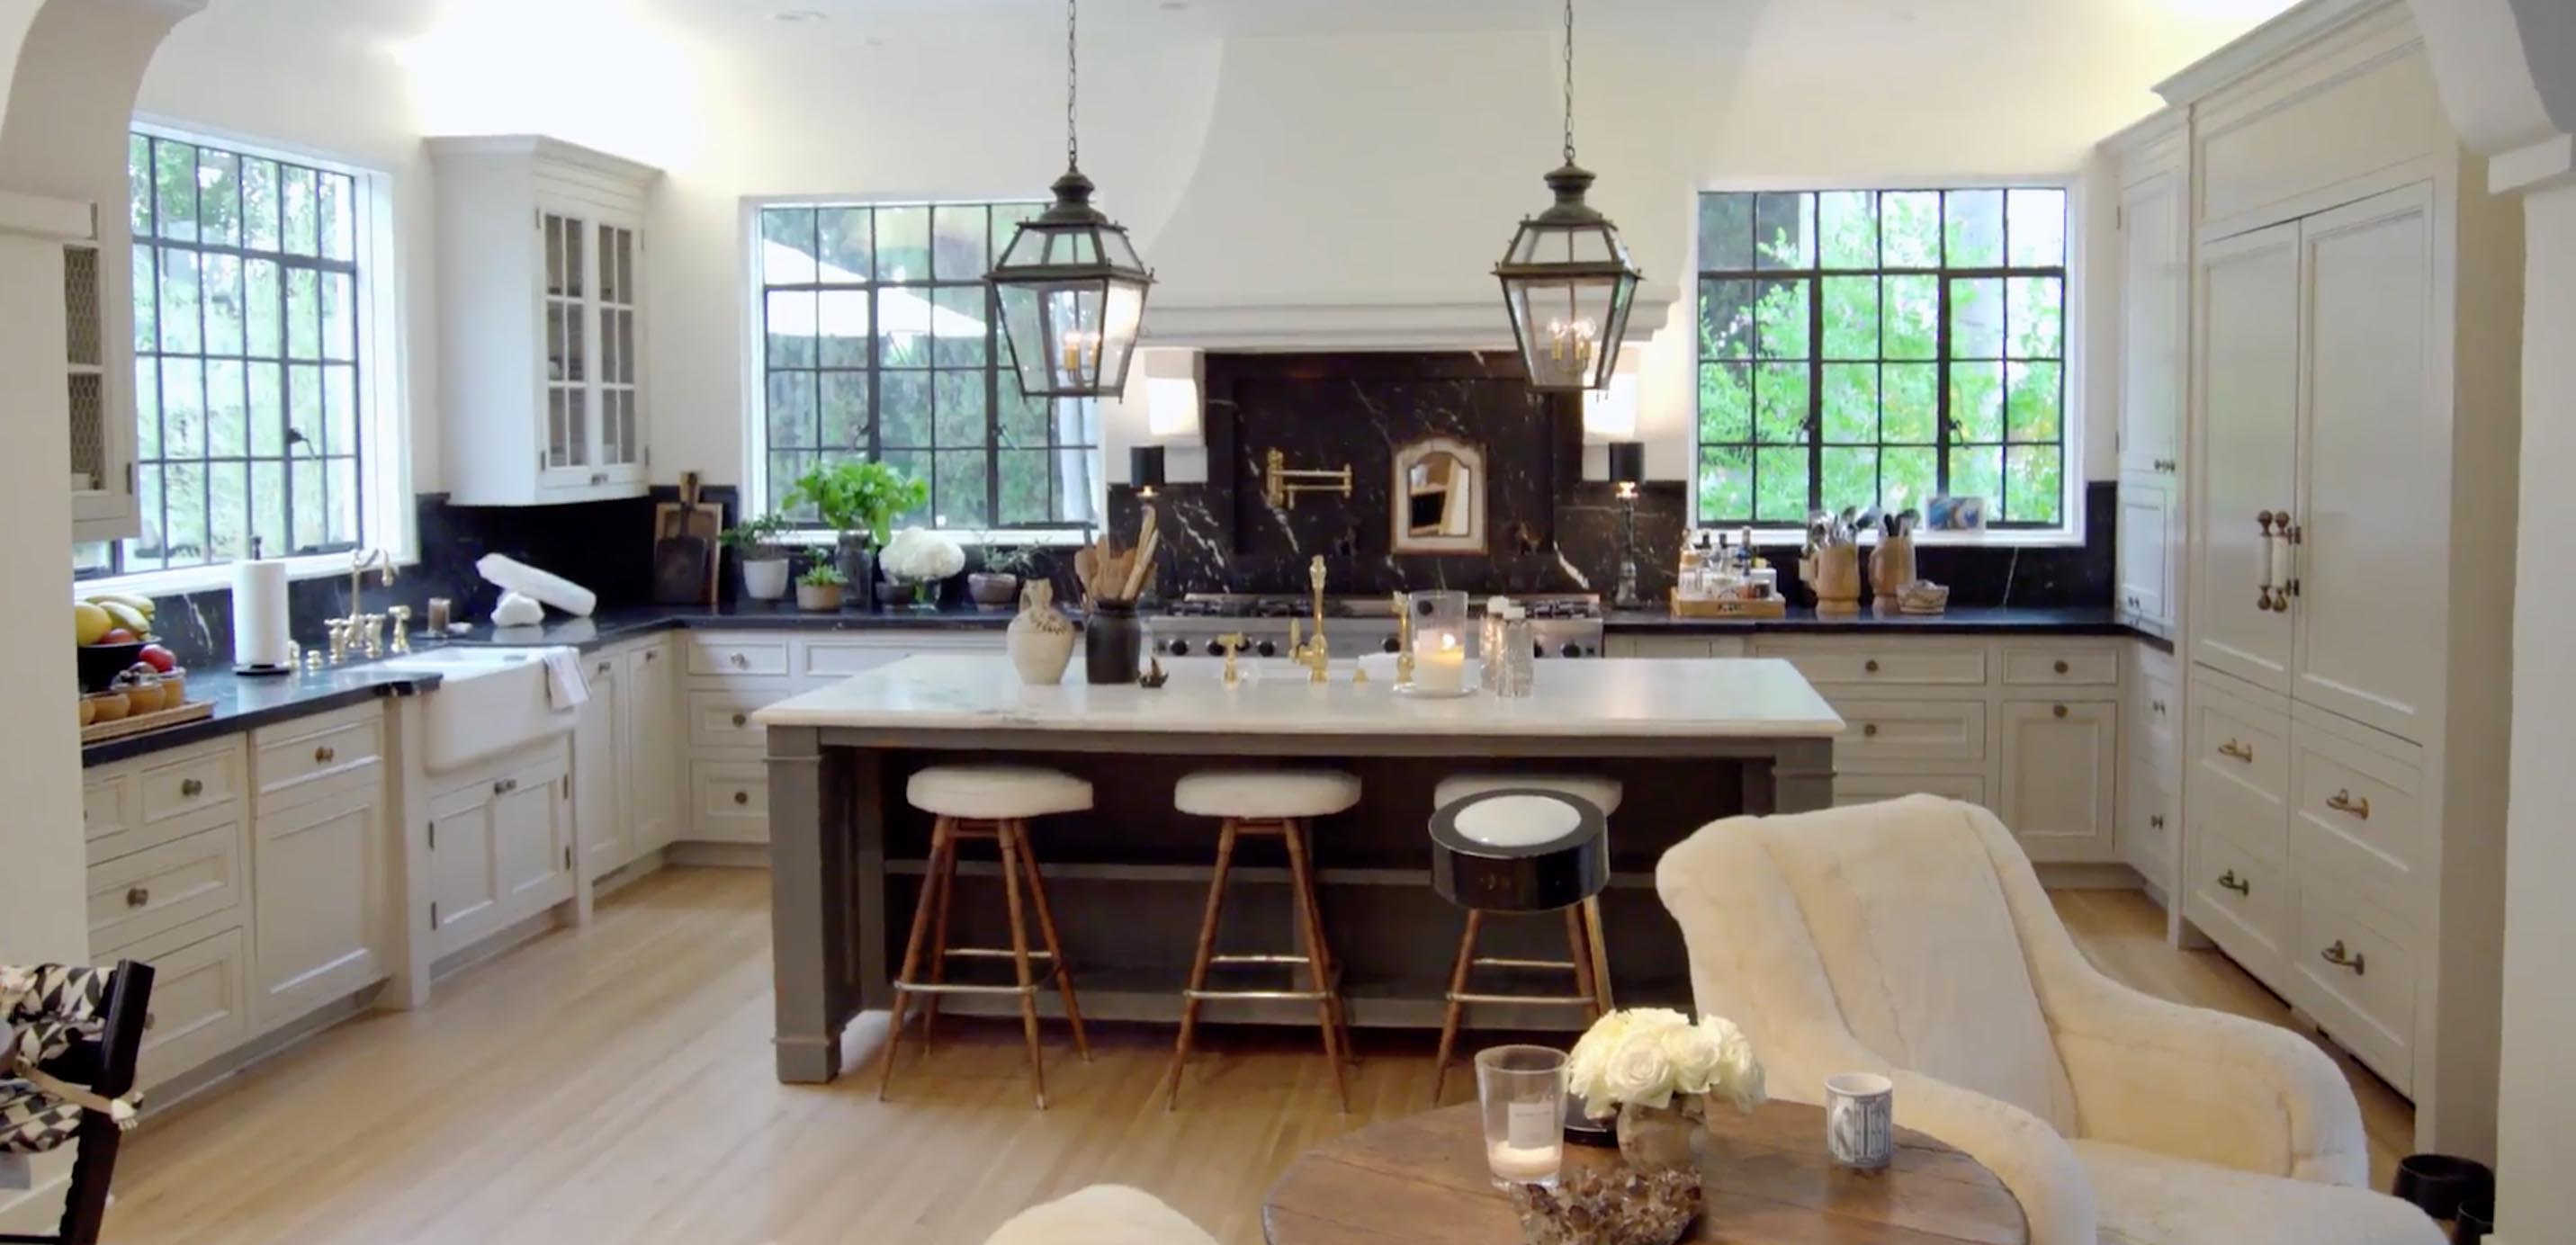 20 Ideas From Nate Berkus & Jeremiah Brent's New LA Home ...